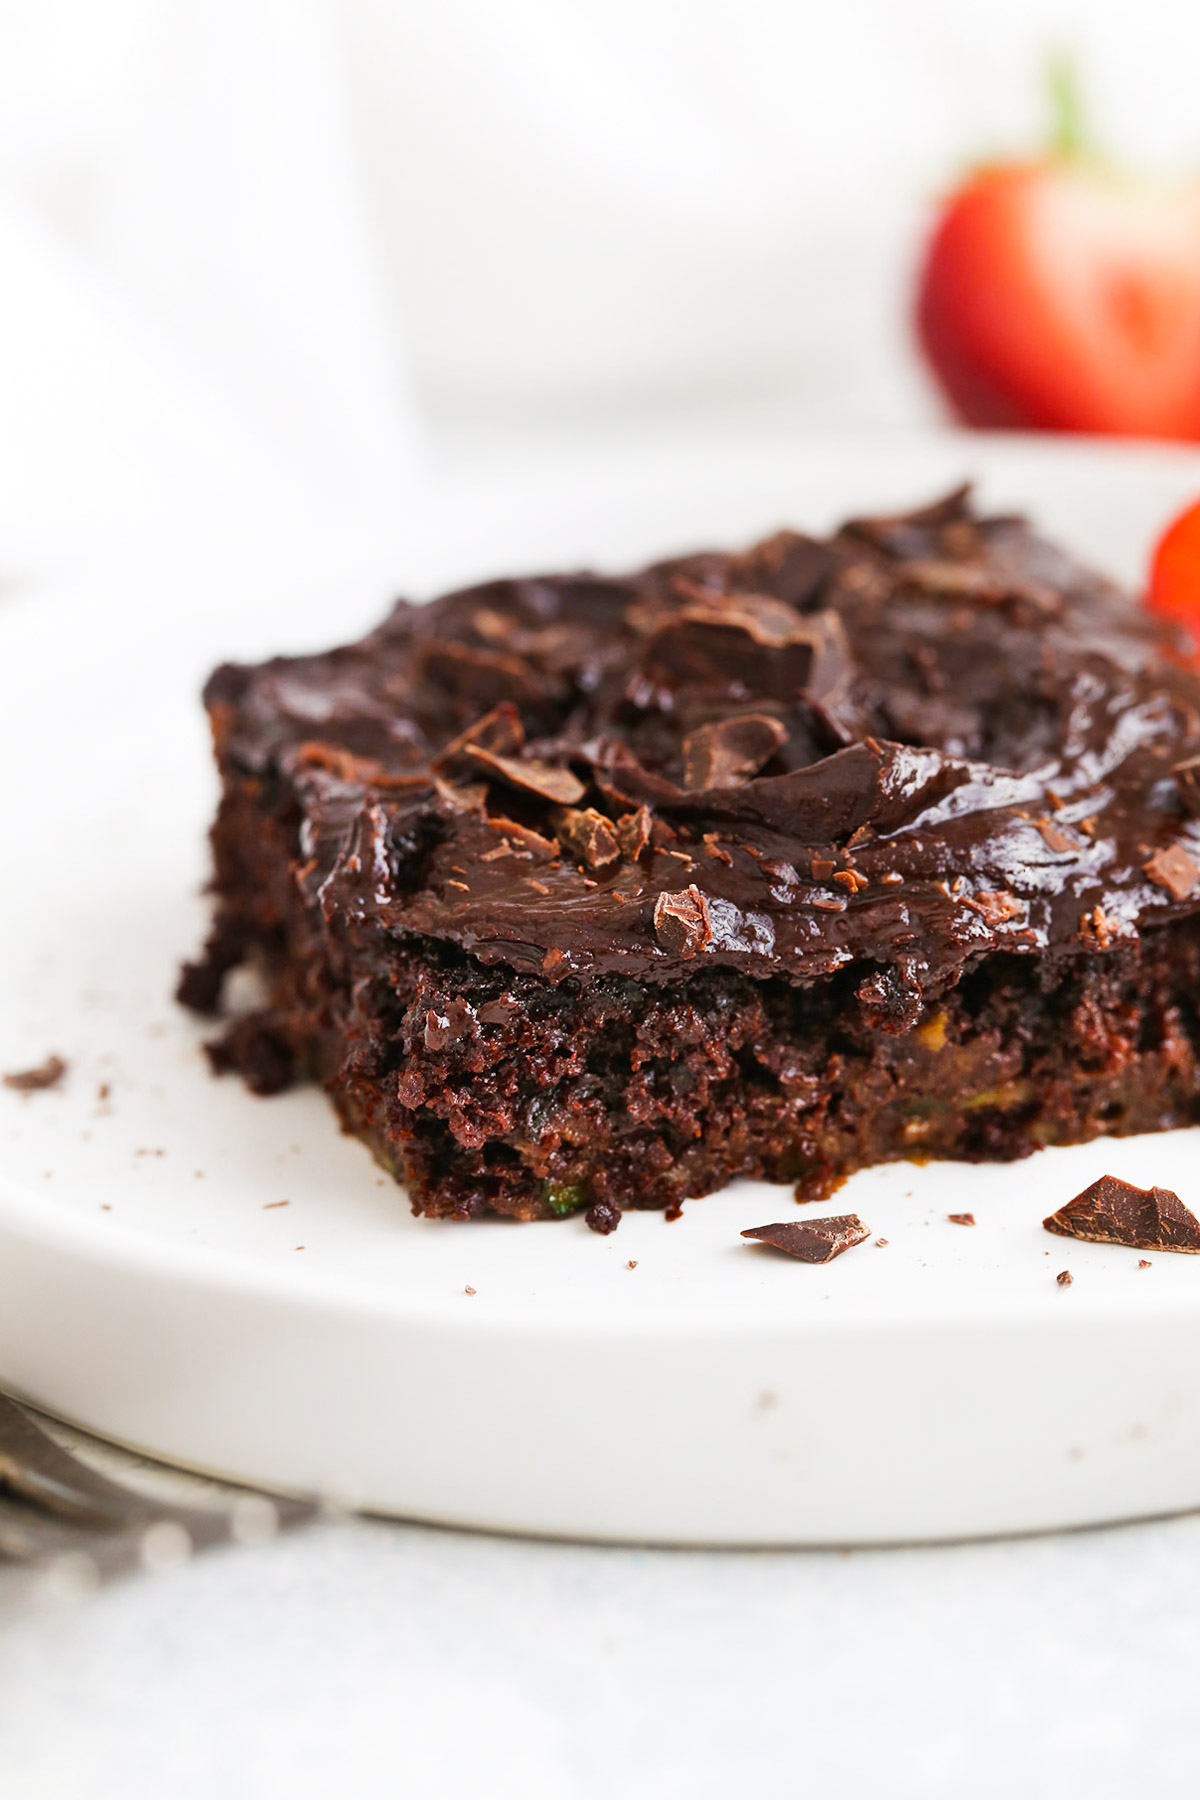 Close up view of a slice of Gluten Free Chocolate Zucchini Cake with Healthy Chocolate Frosting